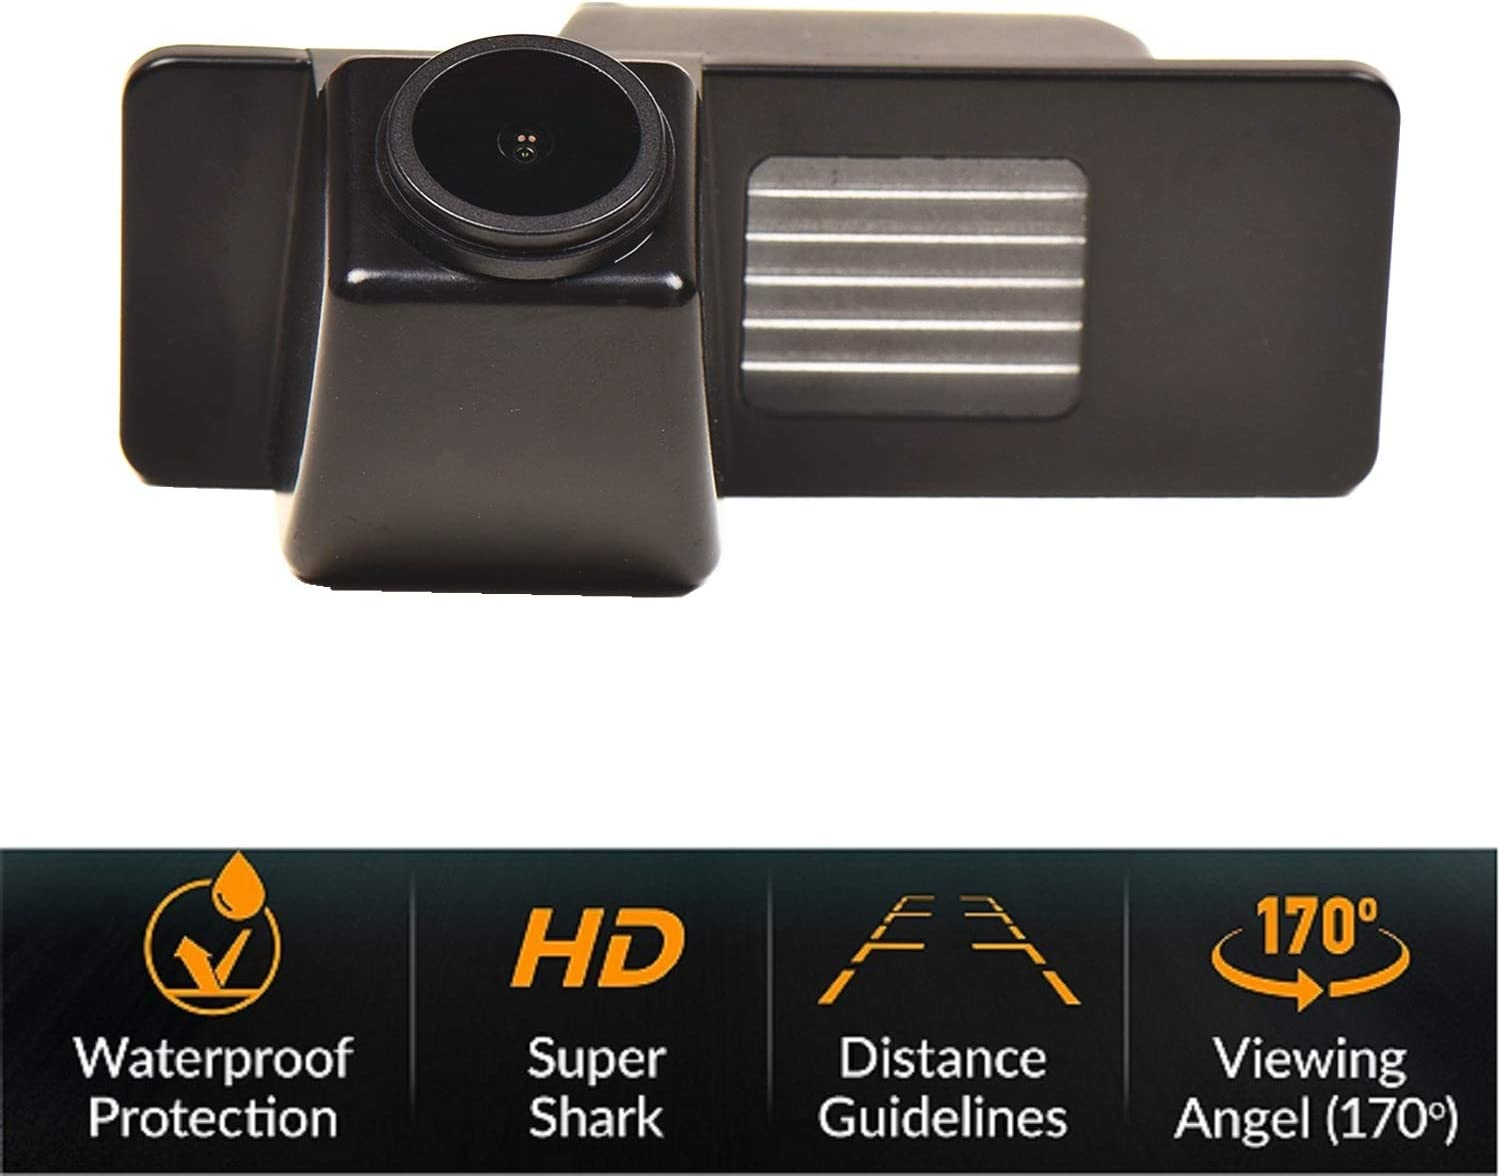 Reversing Camera Integrated in Number Plate Light License Rear View Backup Camera Waterproof Night Vision for Corvette Chevrolet Aveo Cruze Trailblazer Opel Mokka Cadillac CTS SRX Misayaee